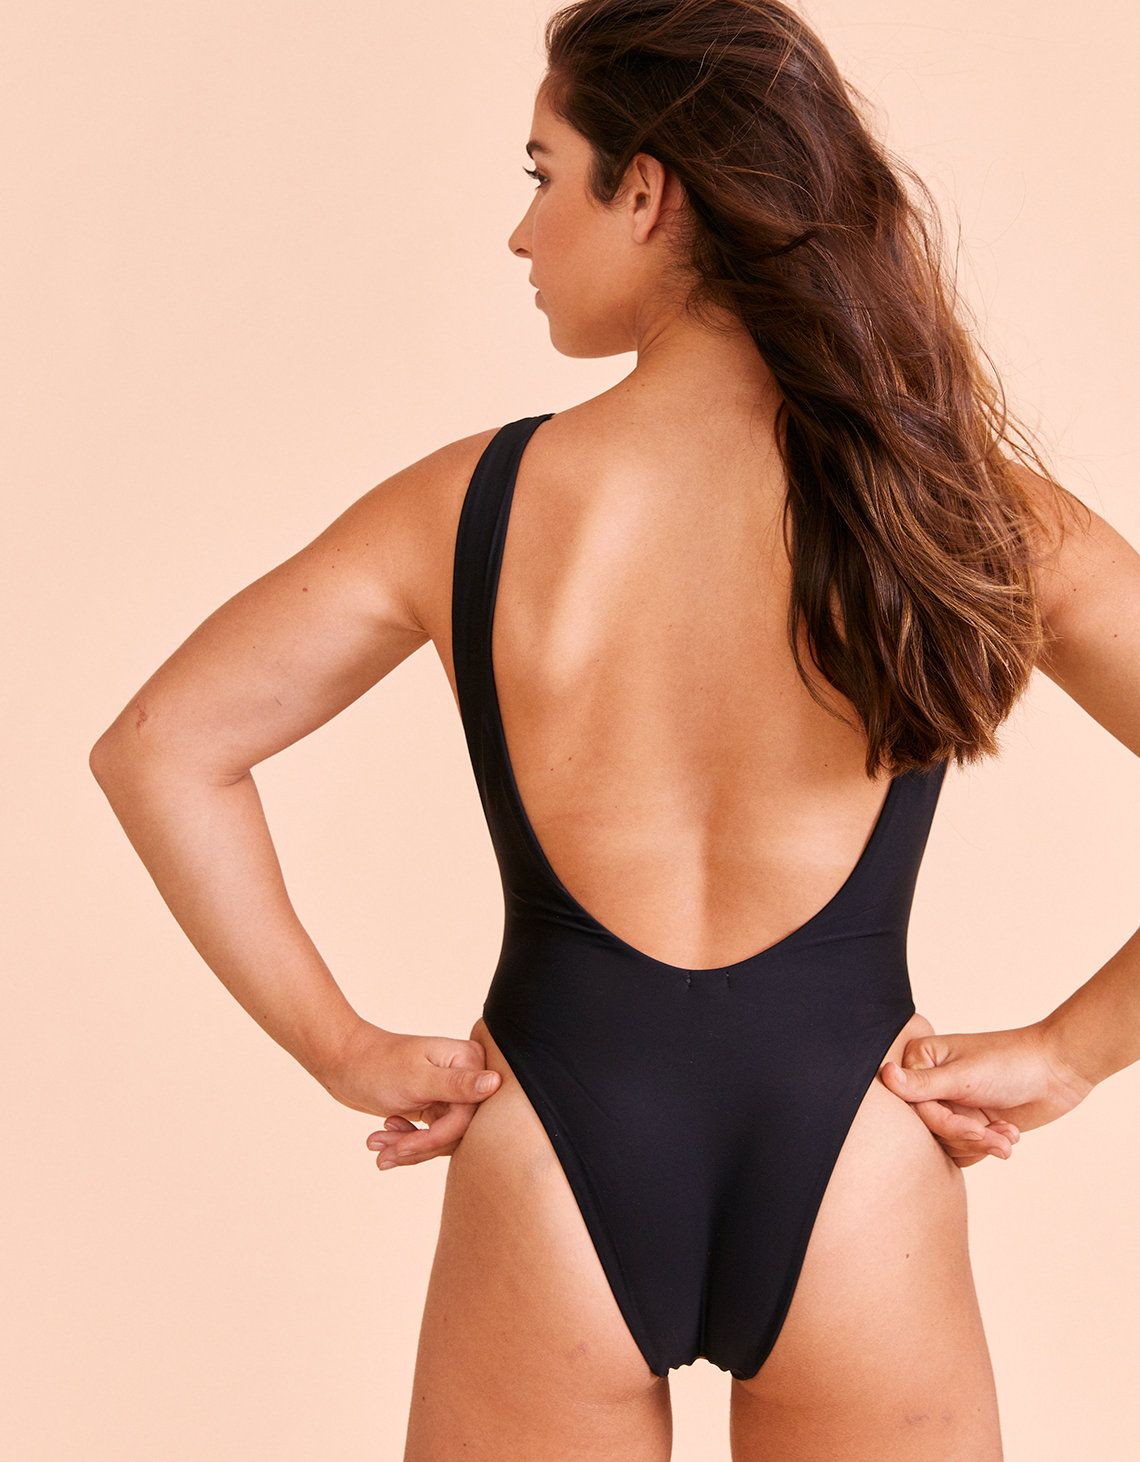 57adf15490d28 Yes, I would recognize her anywhere. Aly Raisman Bikini, Women's One Piece  Swimsuits